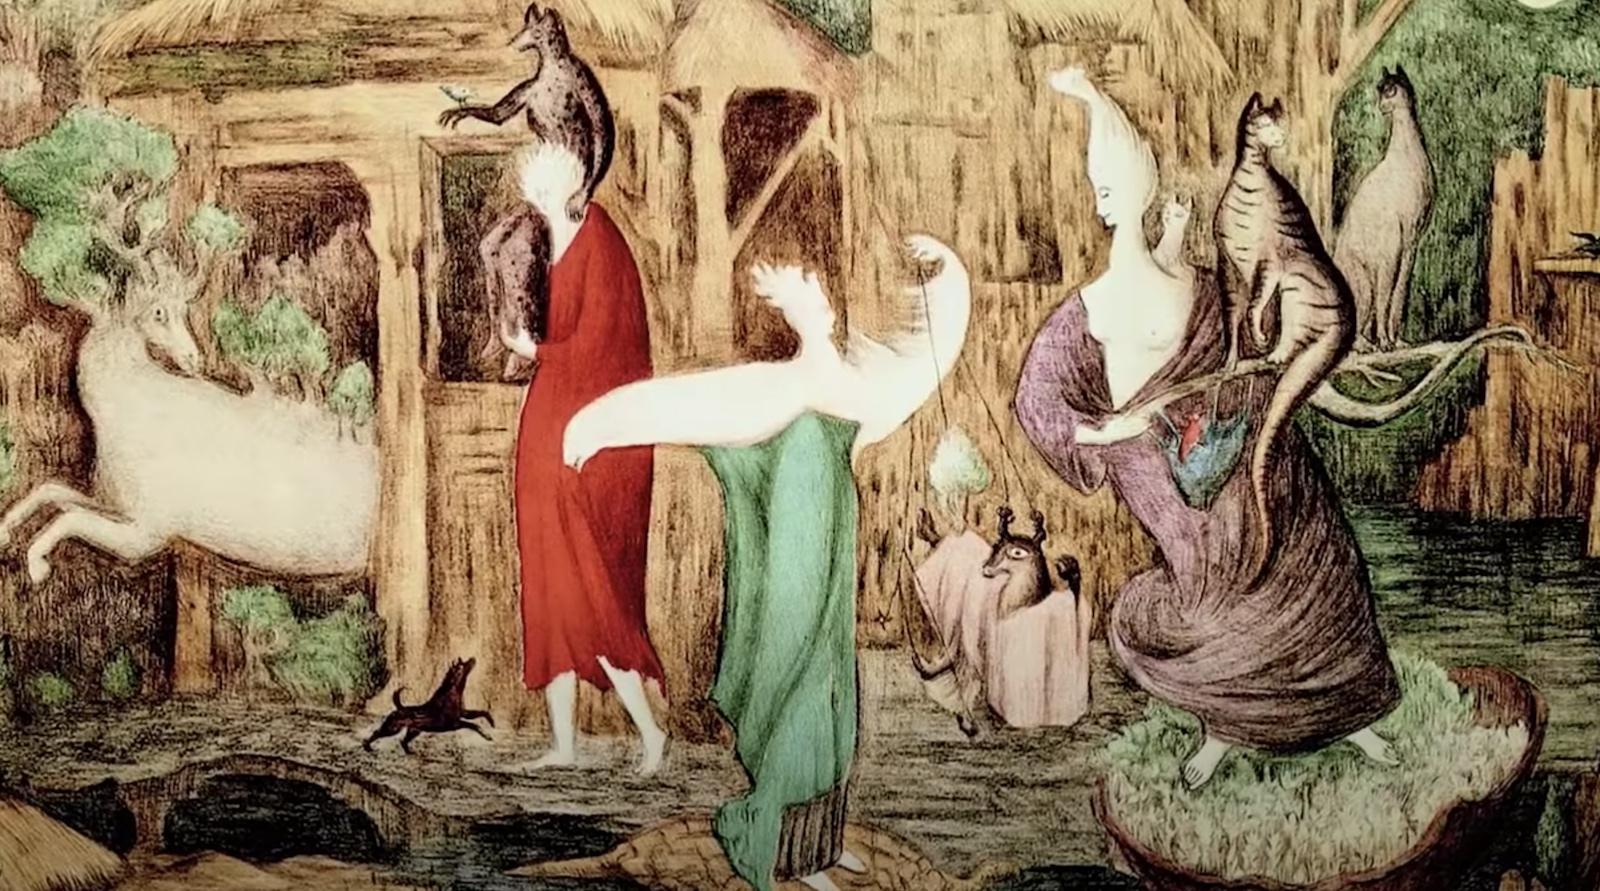 work by Leonora Carrington